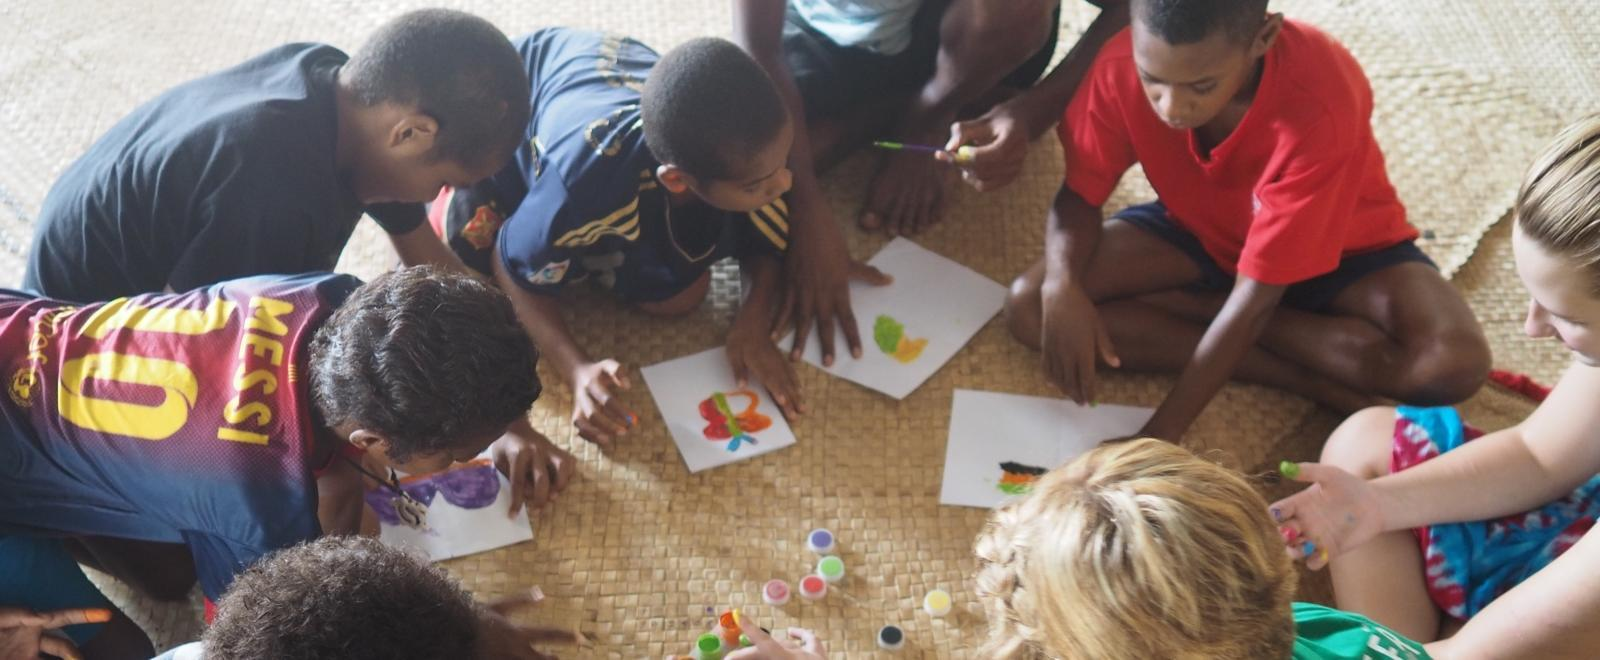 A volunteer and her students play with finger paints during her volunteer work with children for teenagers in Fiji